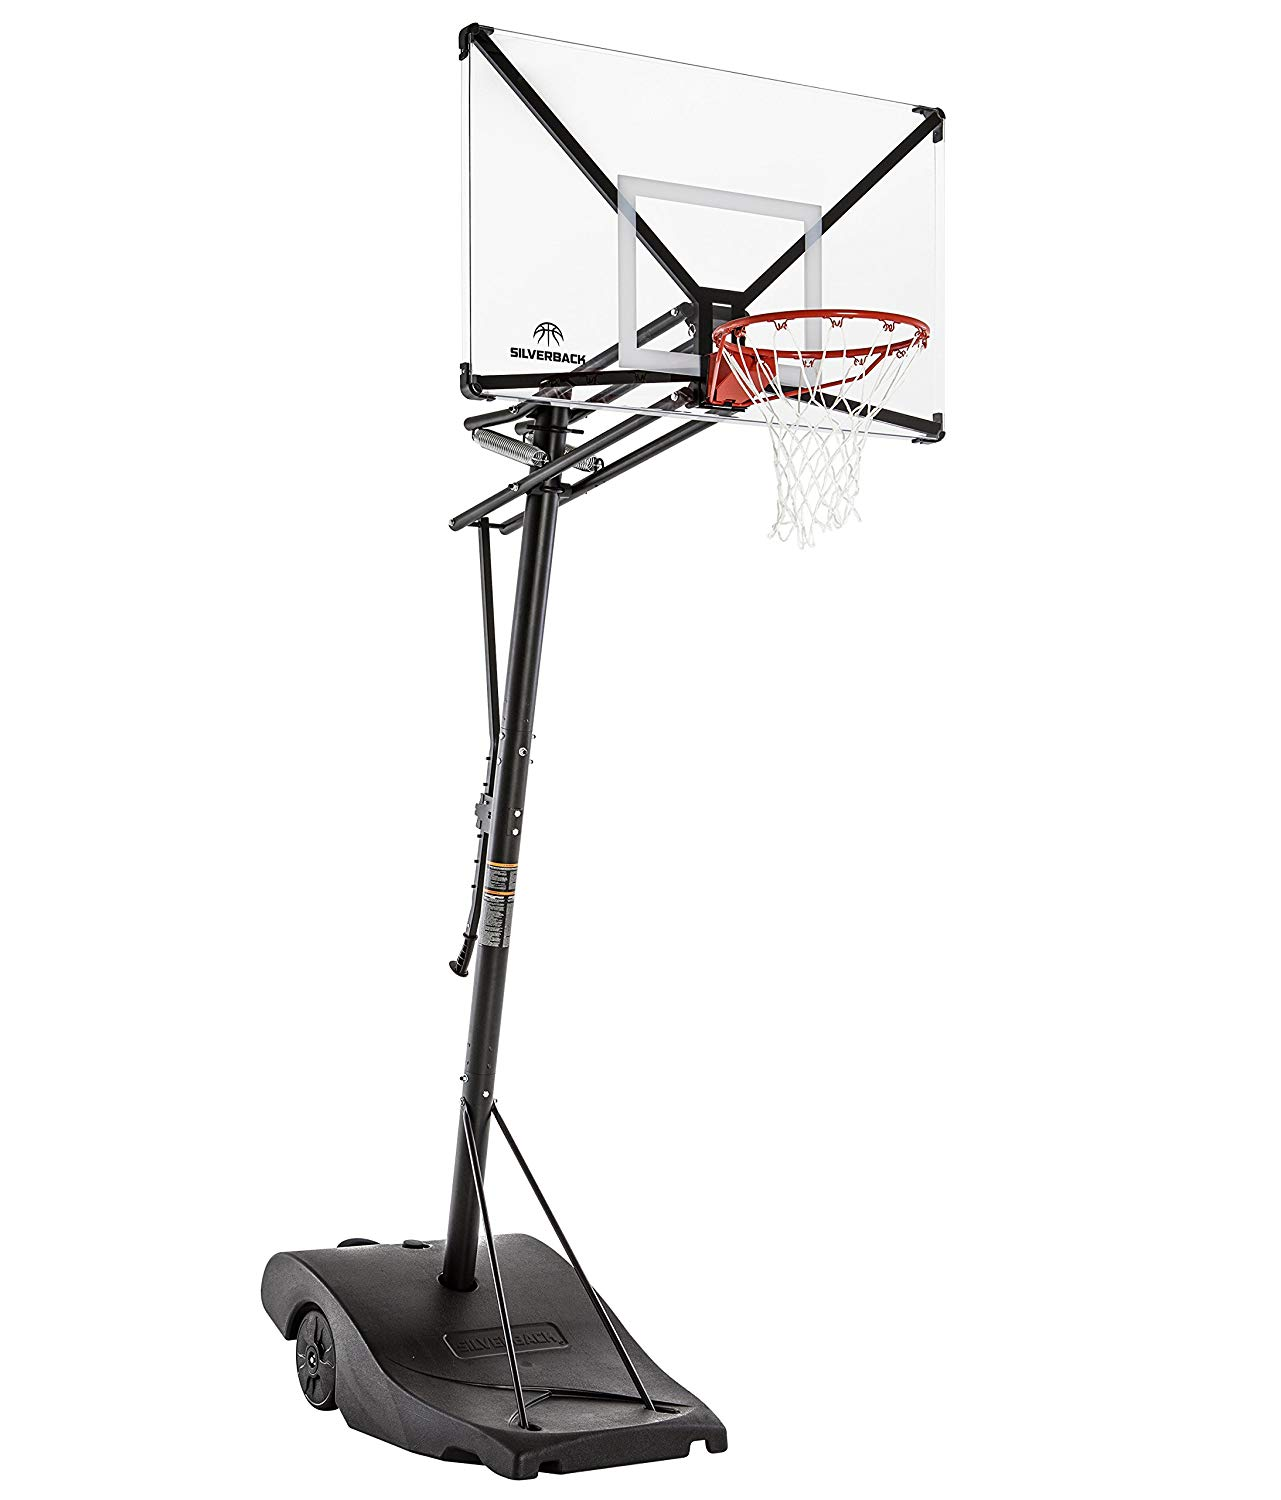 Silverback NXT Portable Height-Adjustable Basketball Hoop